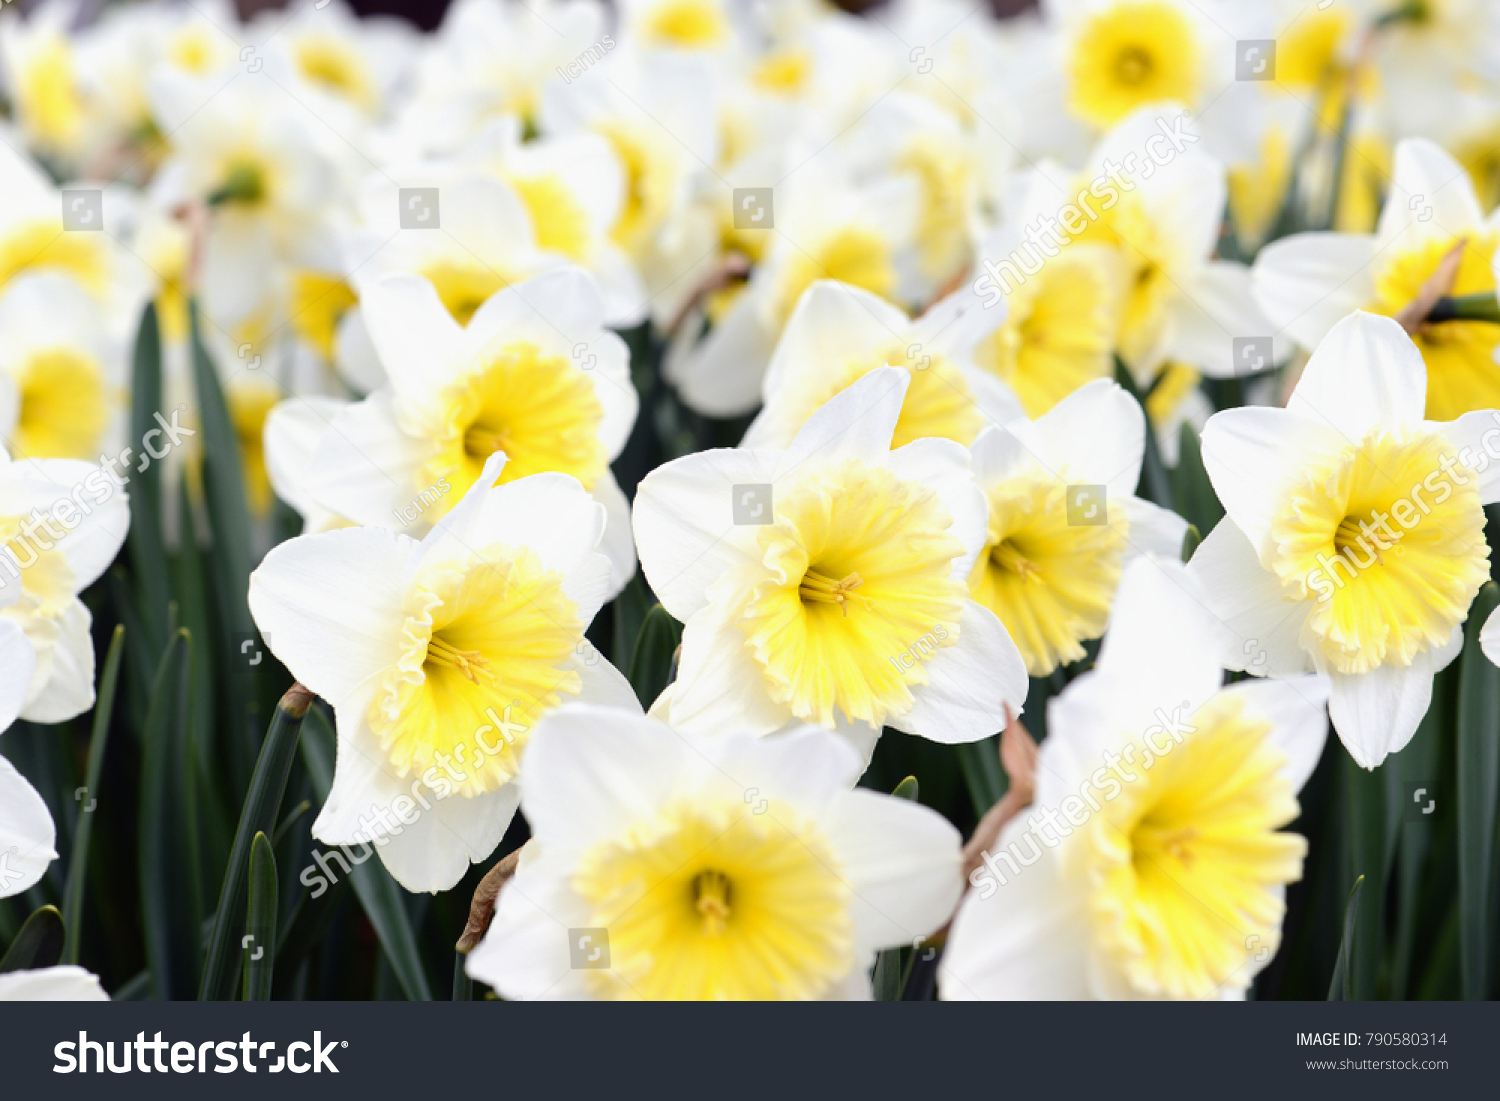 Group Of White Daffodil With Central Yellow Corona In Flowerbed